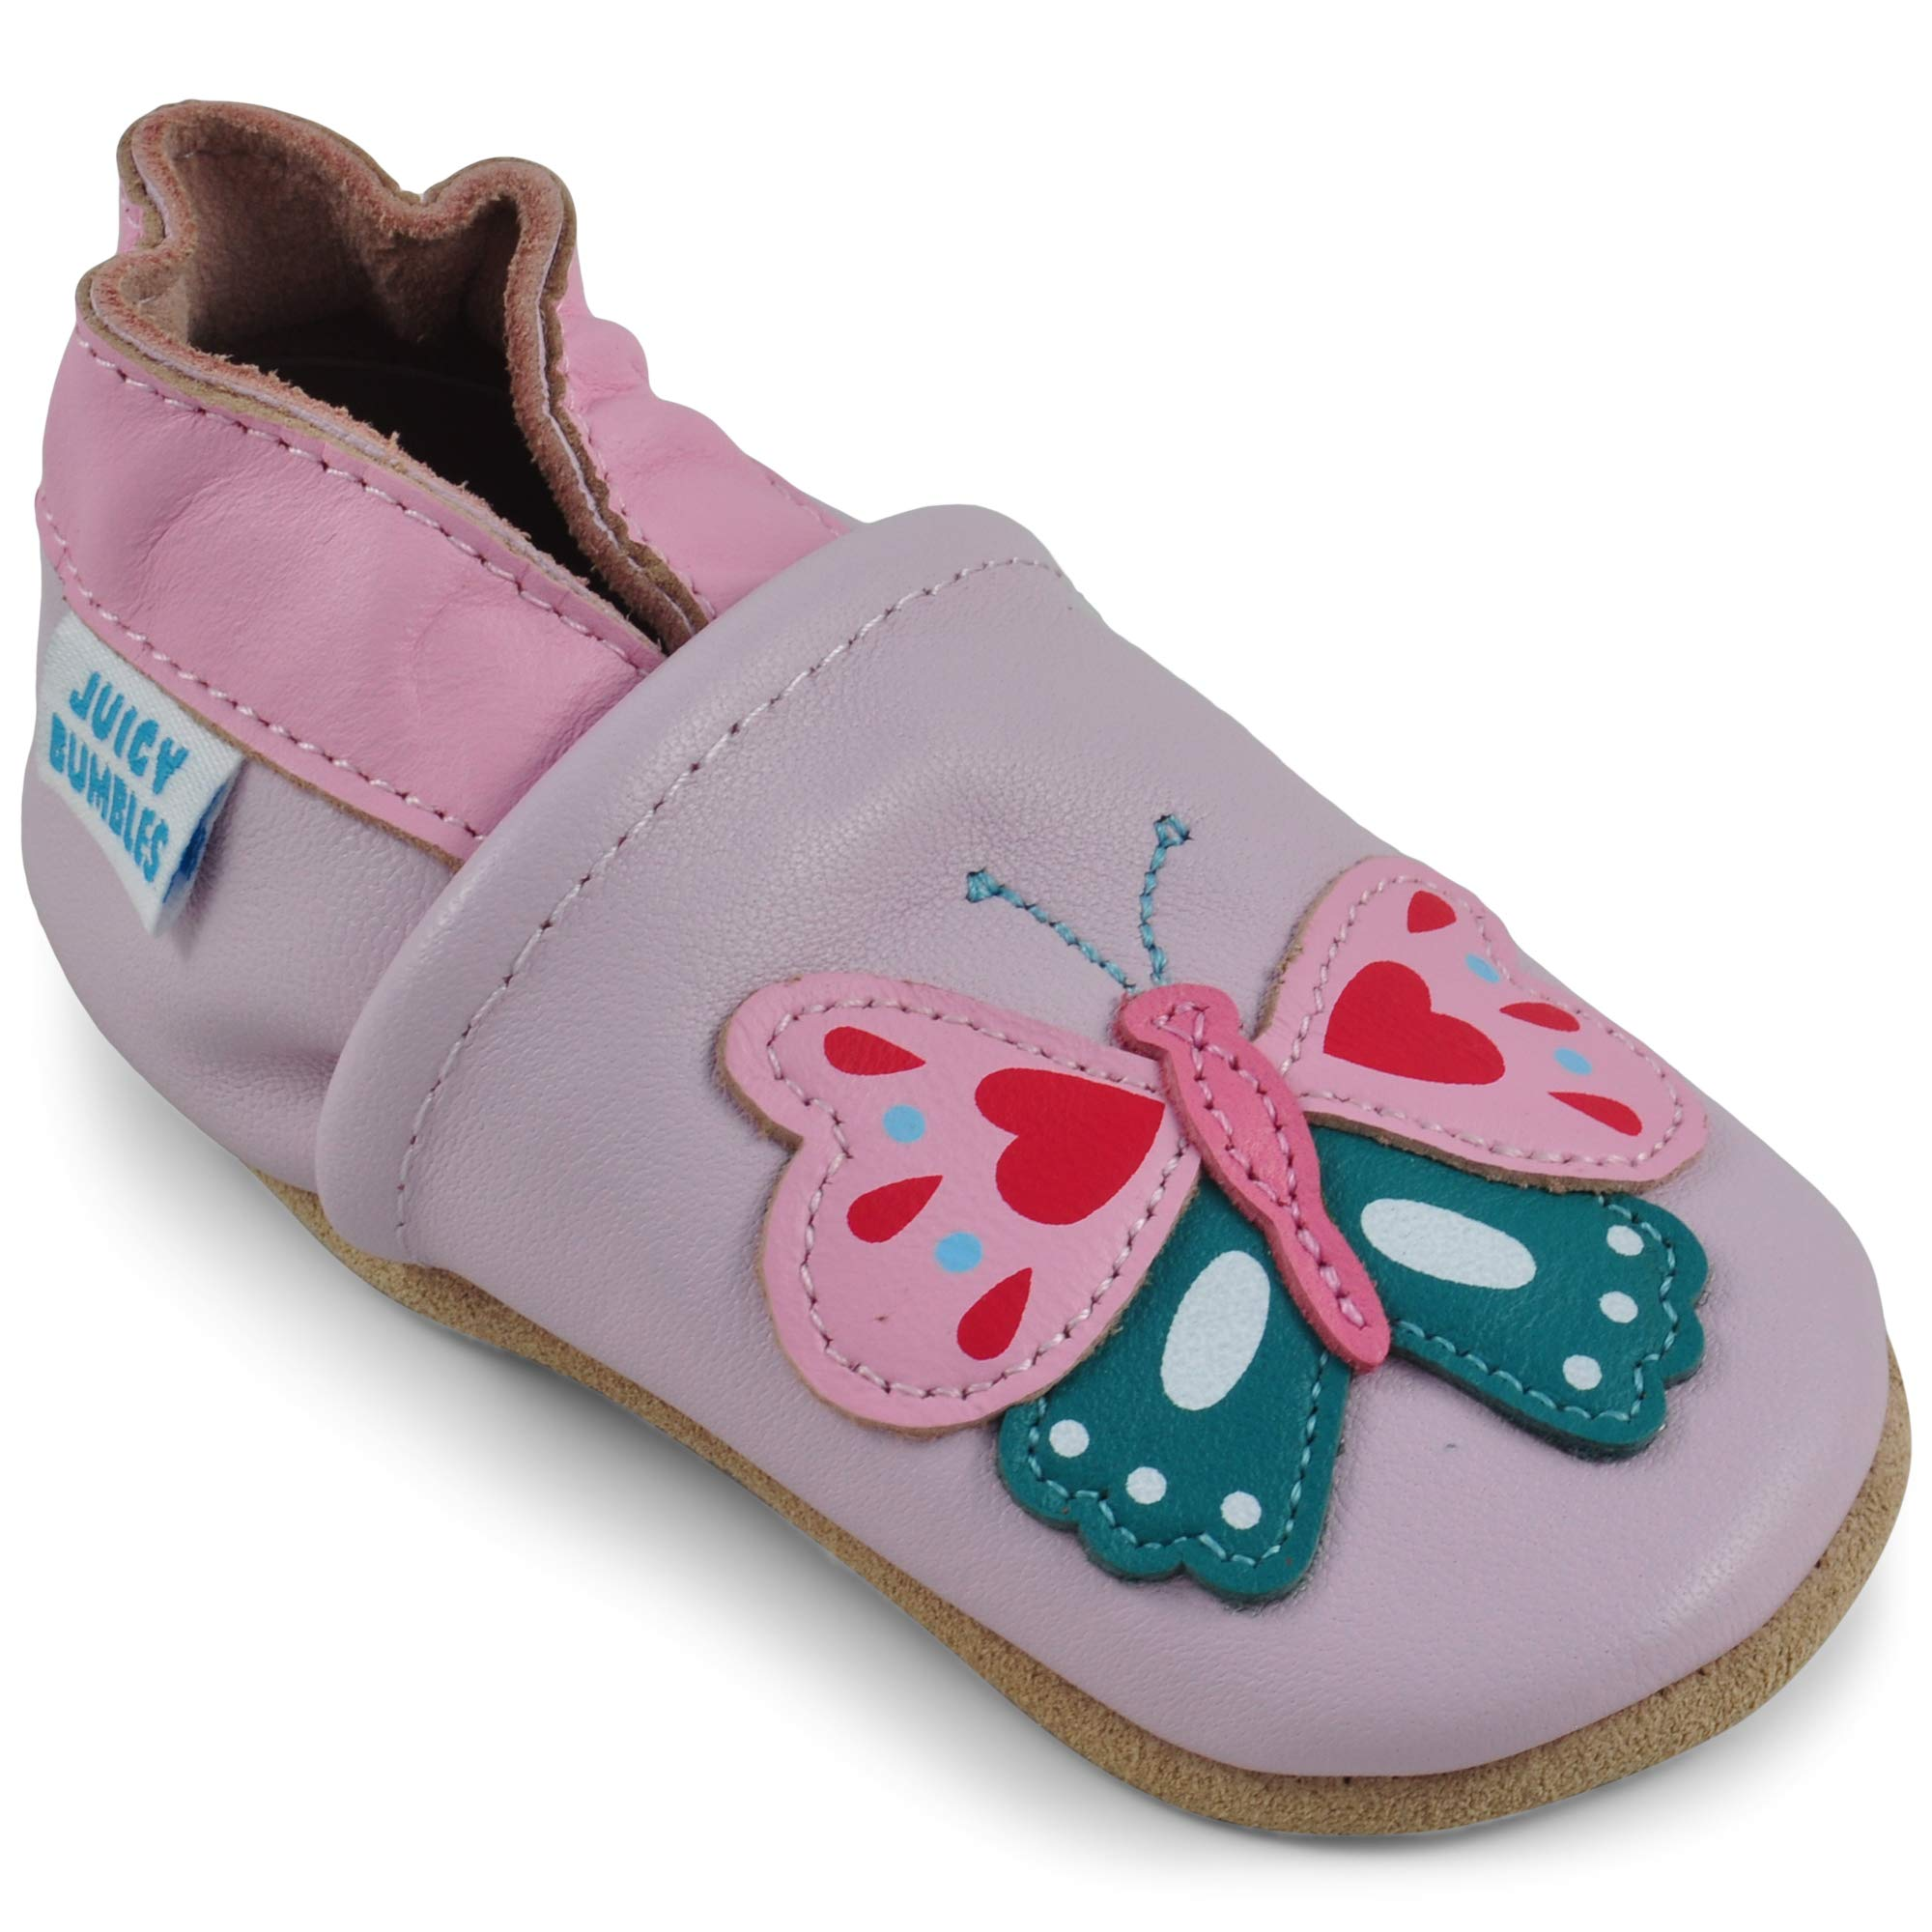 Baby Shoes with Soft Sole Baby Girl Shoes Baby Boy Shoes Leather Toddler Shoes Baby Walking Shoes